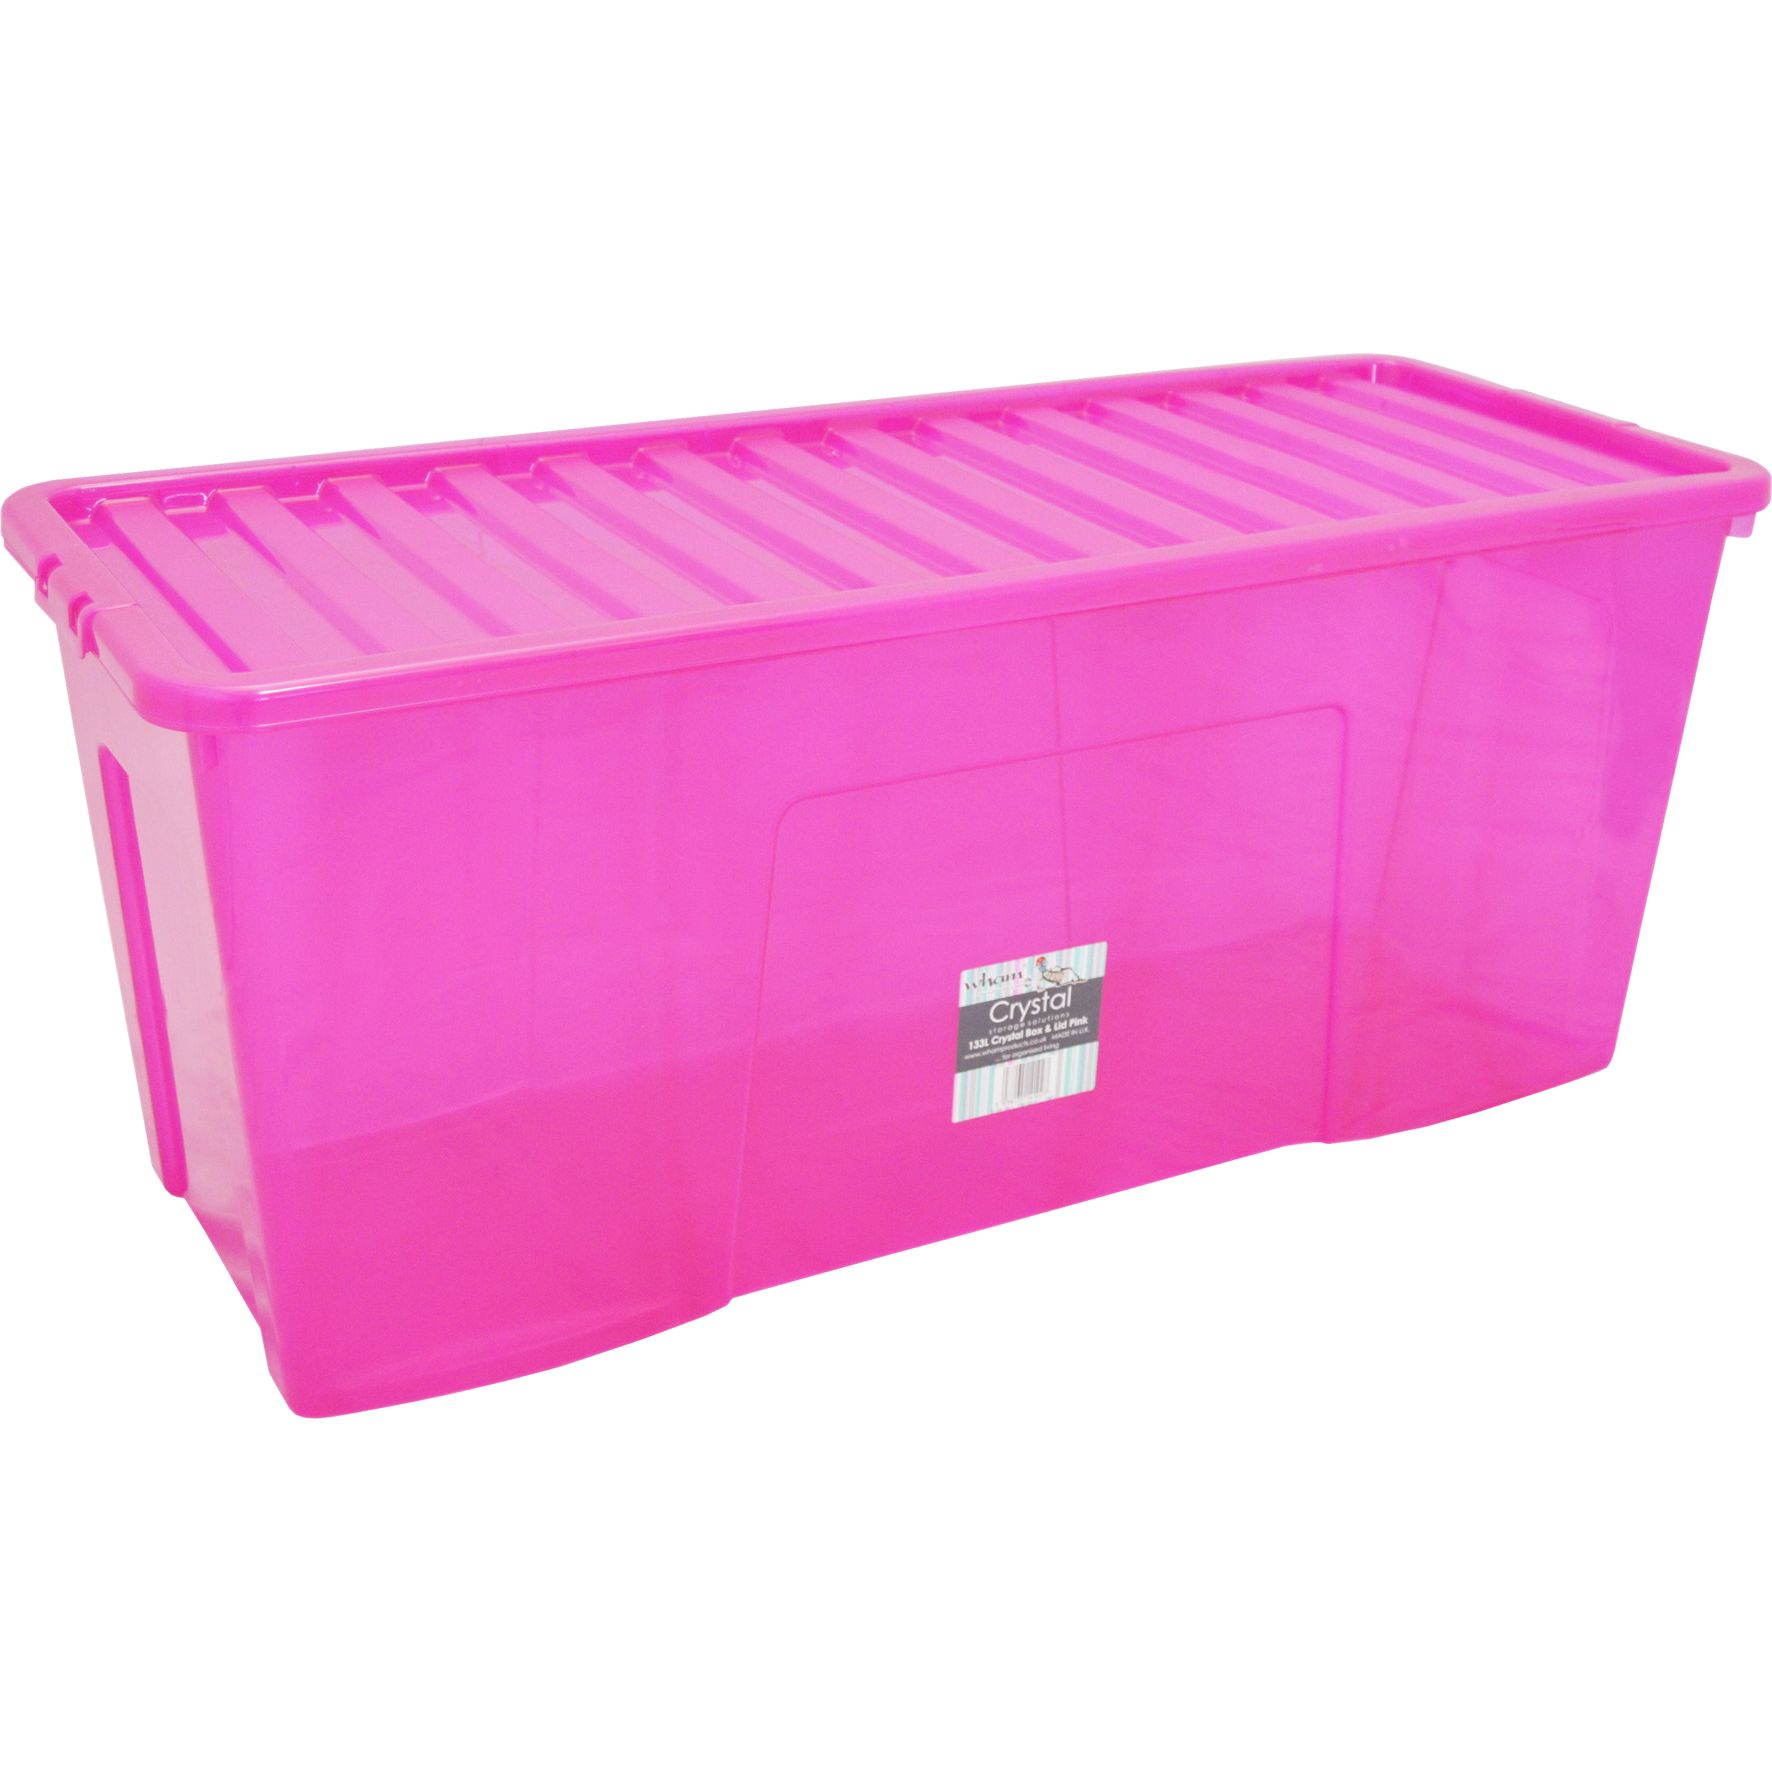 2x Crystal 133l Box Lid Pink House And Home Slemish Landscape